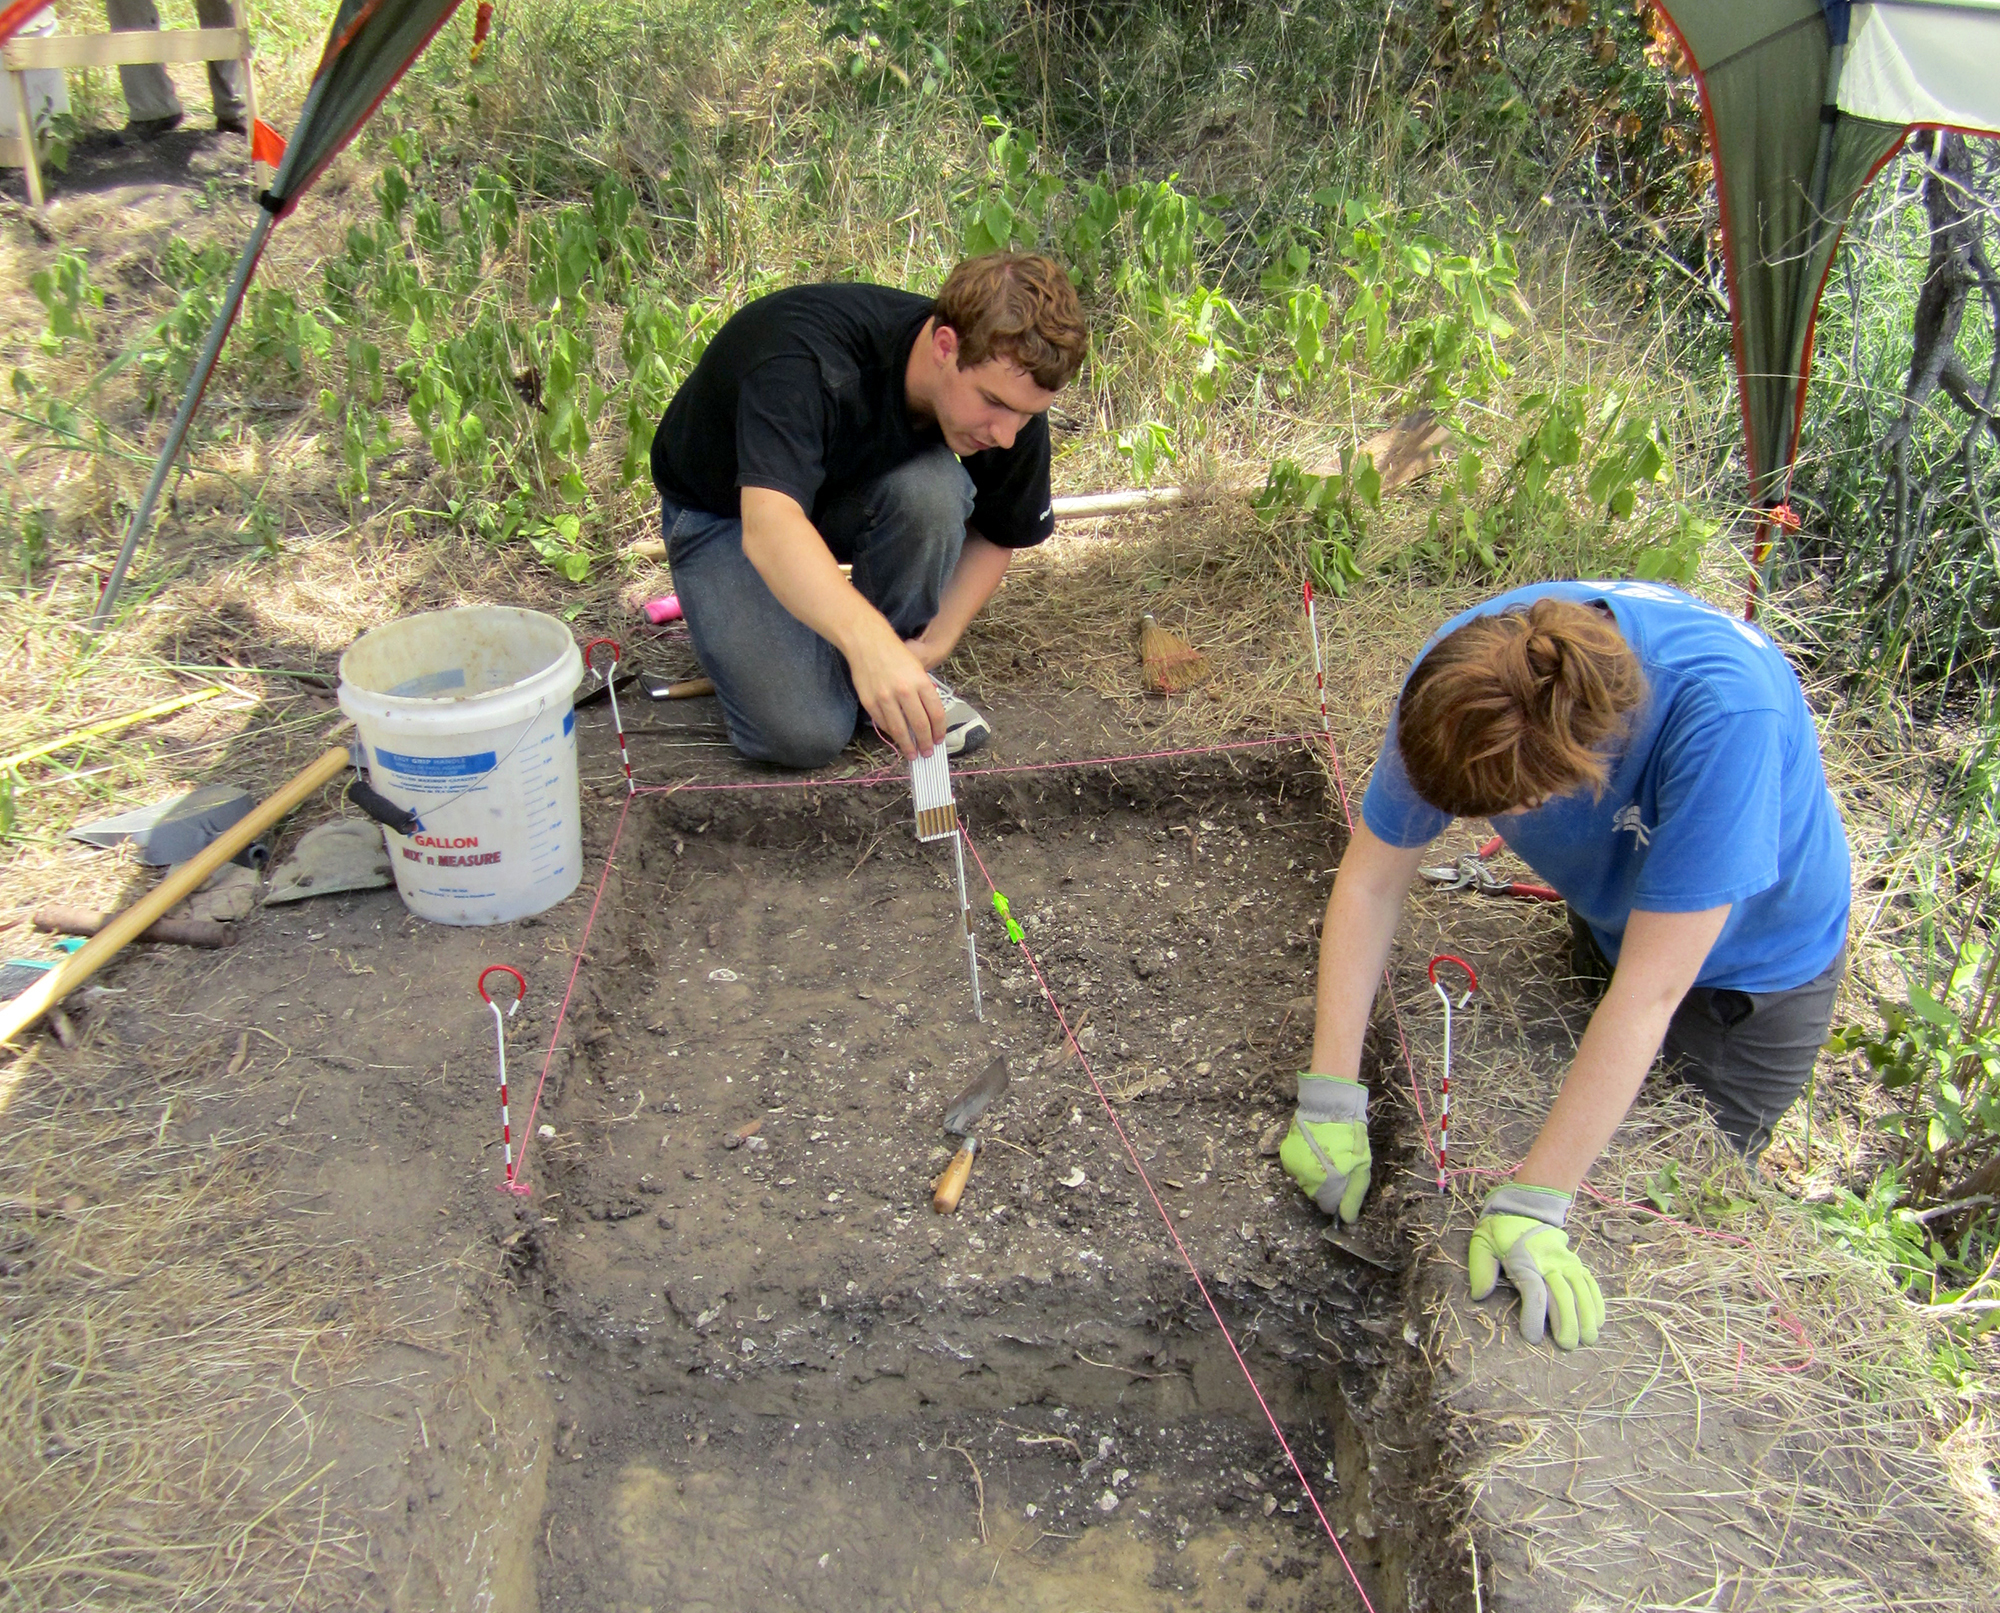 Members of the research team, Sean McCanty and Courtney Hofman, excavate an ancient oyster shell midden at the Smithsonian Environmental Research Center in Edgewater, Md.